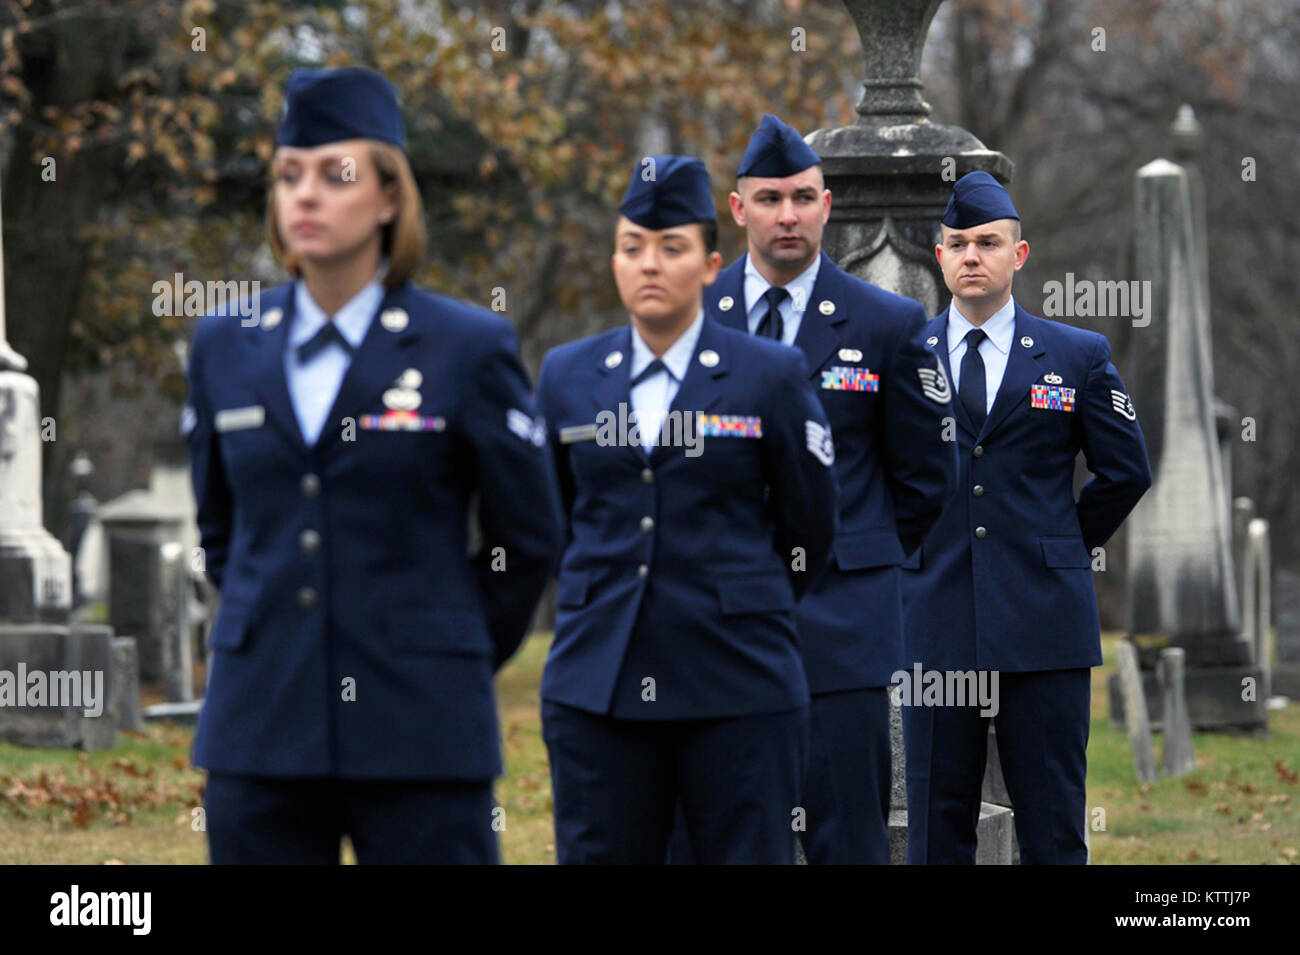 The New York Air National Guard Color Guard marks the 235th birthday of President Martin Van Buren during a wreath laying ceremony at Van Buren's grave site in Kinderhook, New York on Tuesday, December 5th. The annual event recognizes the former President Martin Van Buren, a Columbia County native who died on July 24, 1862 in Kinderhook, N.Y. He was born on December 5, 1782. The United States Military honors former presidents by laying wreaths presented by the current president at their gravesites on the anniversary of their birth. ( New York Air Guard photo by TSgt Stephen Girolami) Stock Photo